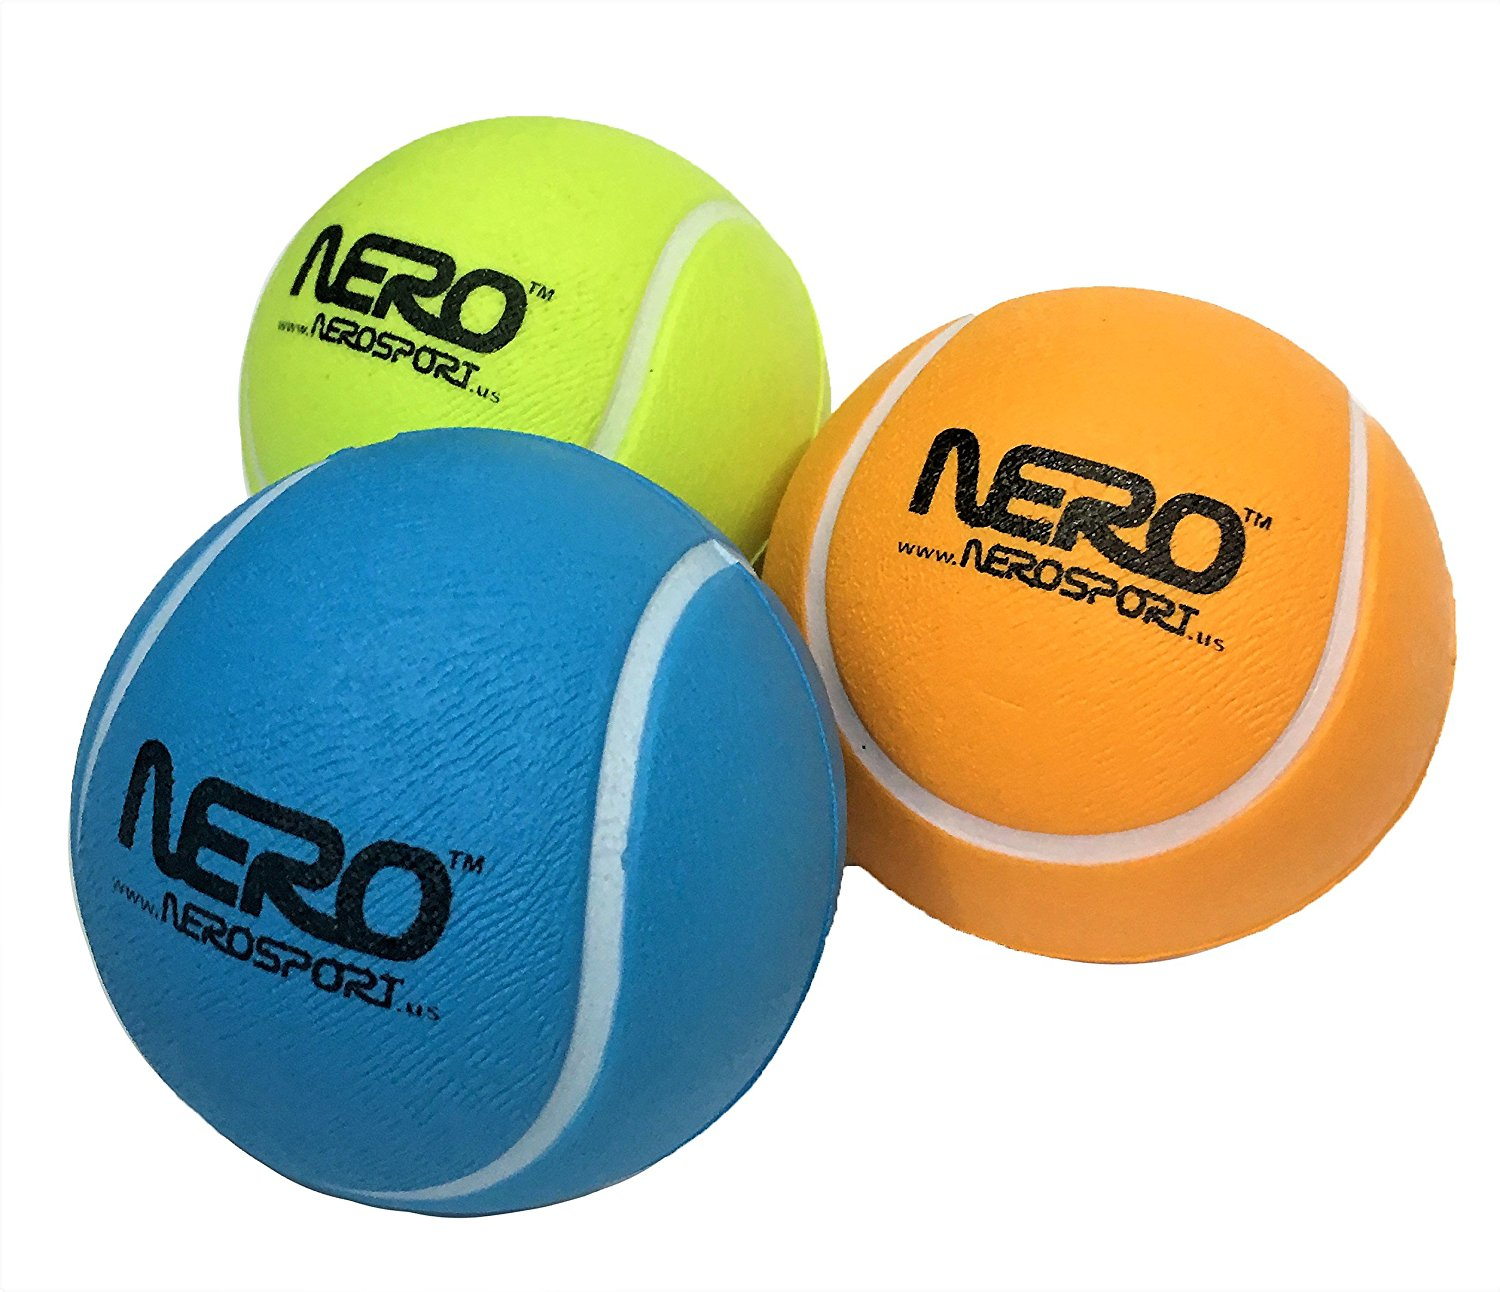 Nero NS-RS High Bounce Rubber Toy Tennis Ball 2.5 inch Great For the Streets Park Playground Back Yard Boys & Girls Love it Agility Ball Bulk Price Birthdays